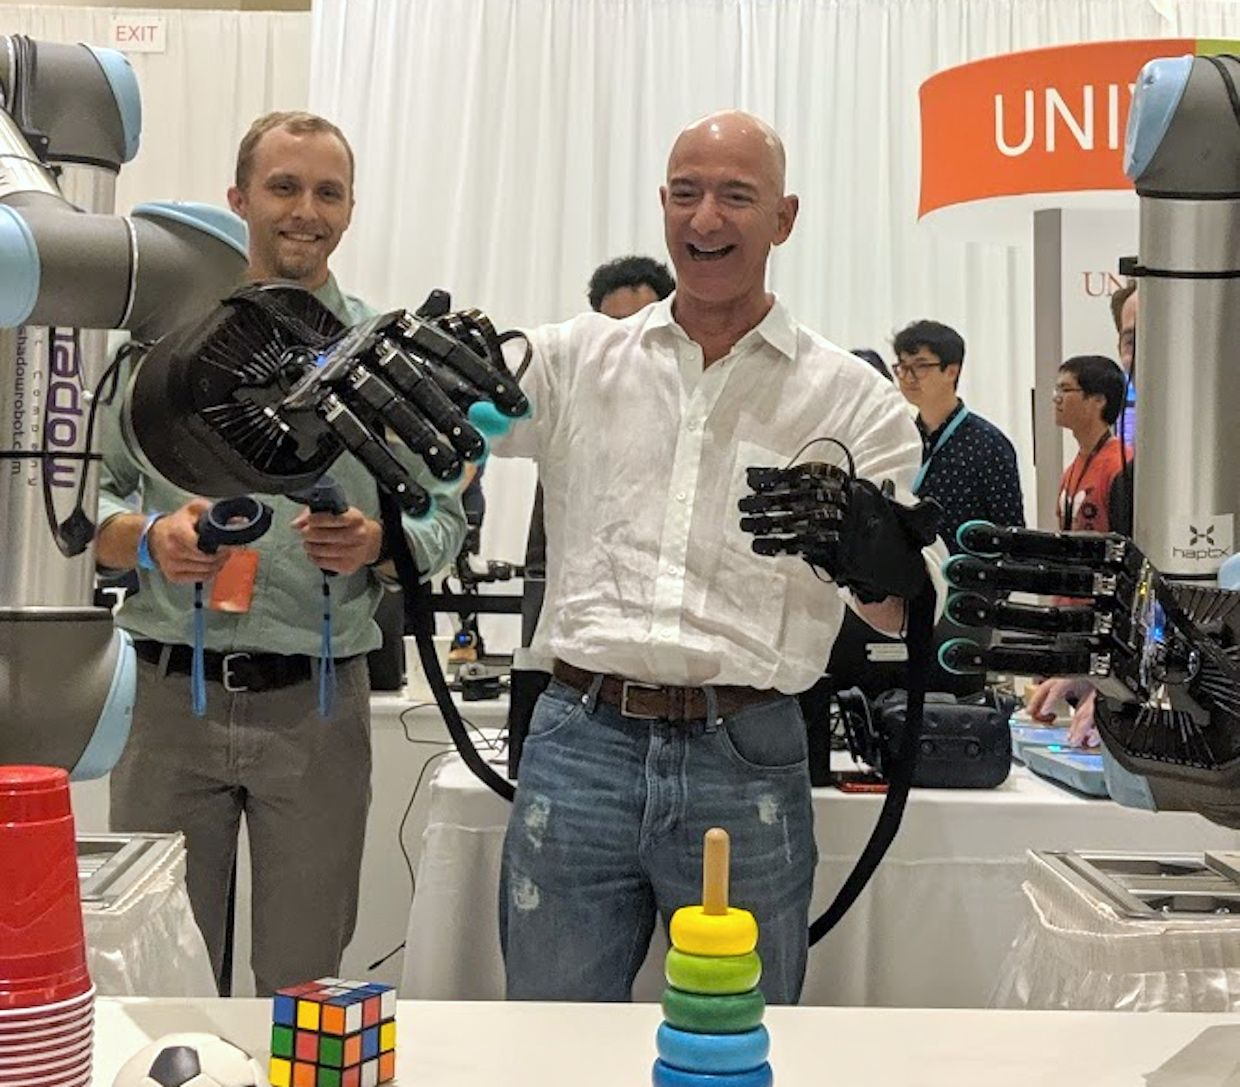 Amazon CEO Jeff Bezos tries dexterous robot hand at re:MARS conference